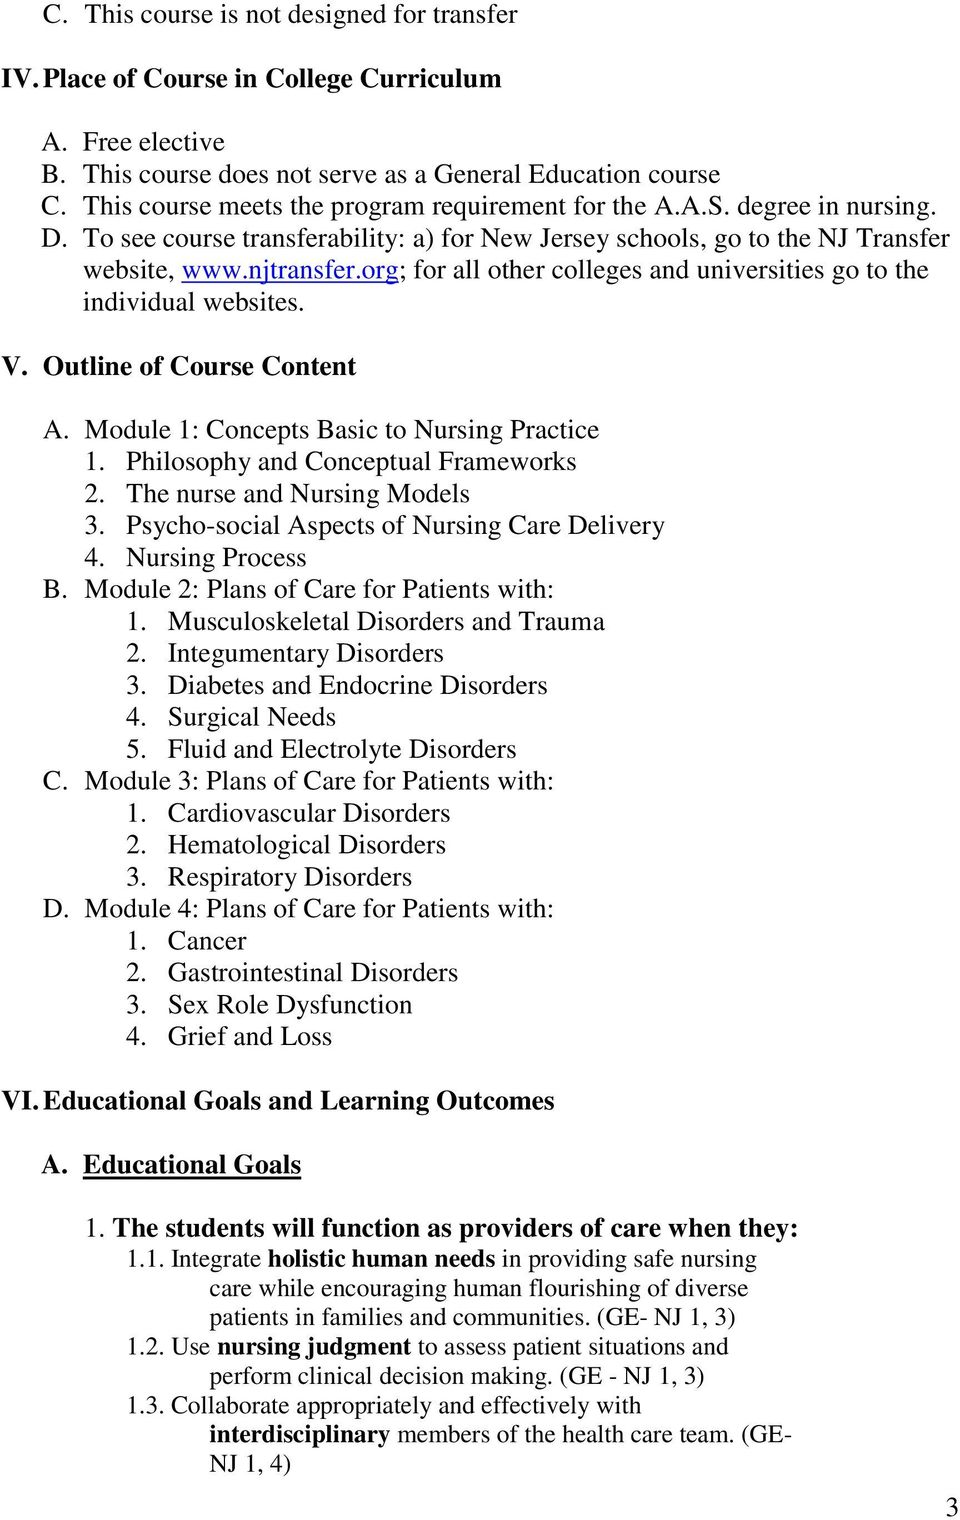 org; for all other colleges and universities go to the individual websites. V. Outline of Course Content A. Module 1: Concepts Basic to Nursing Practice 1. Philosophy and Conceptual Frameworks 2.